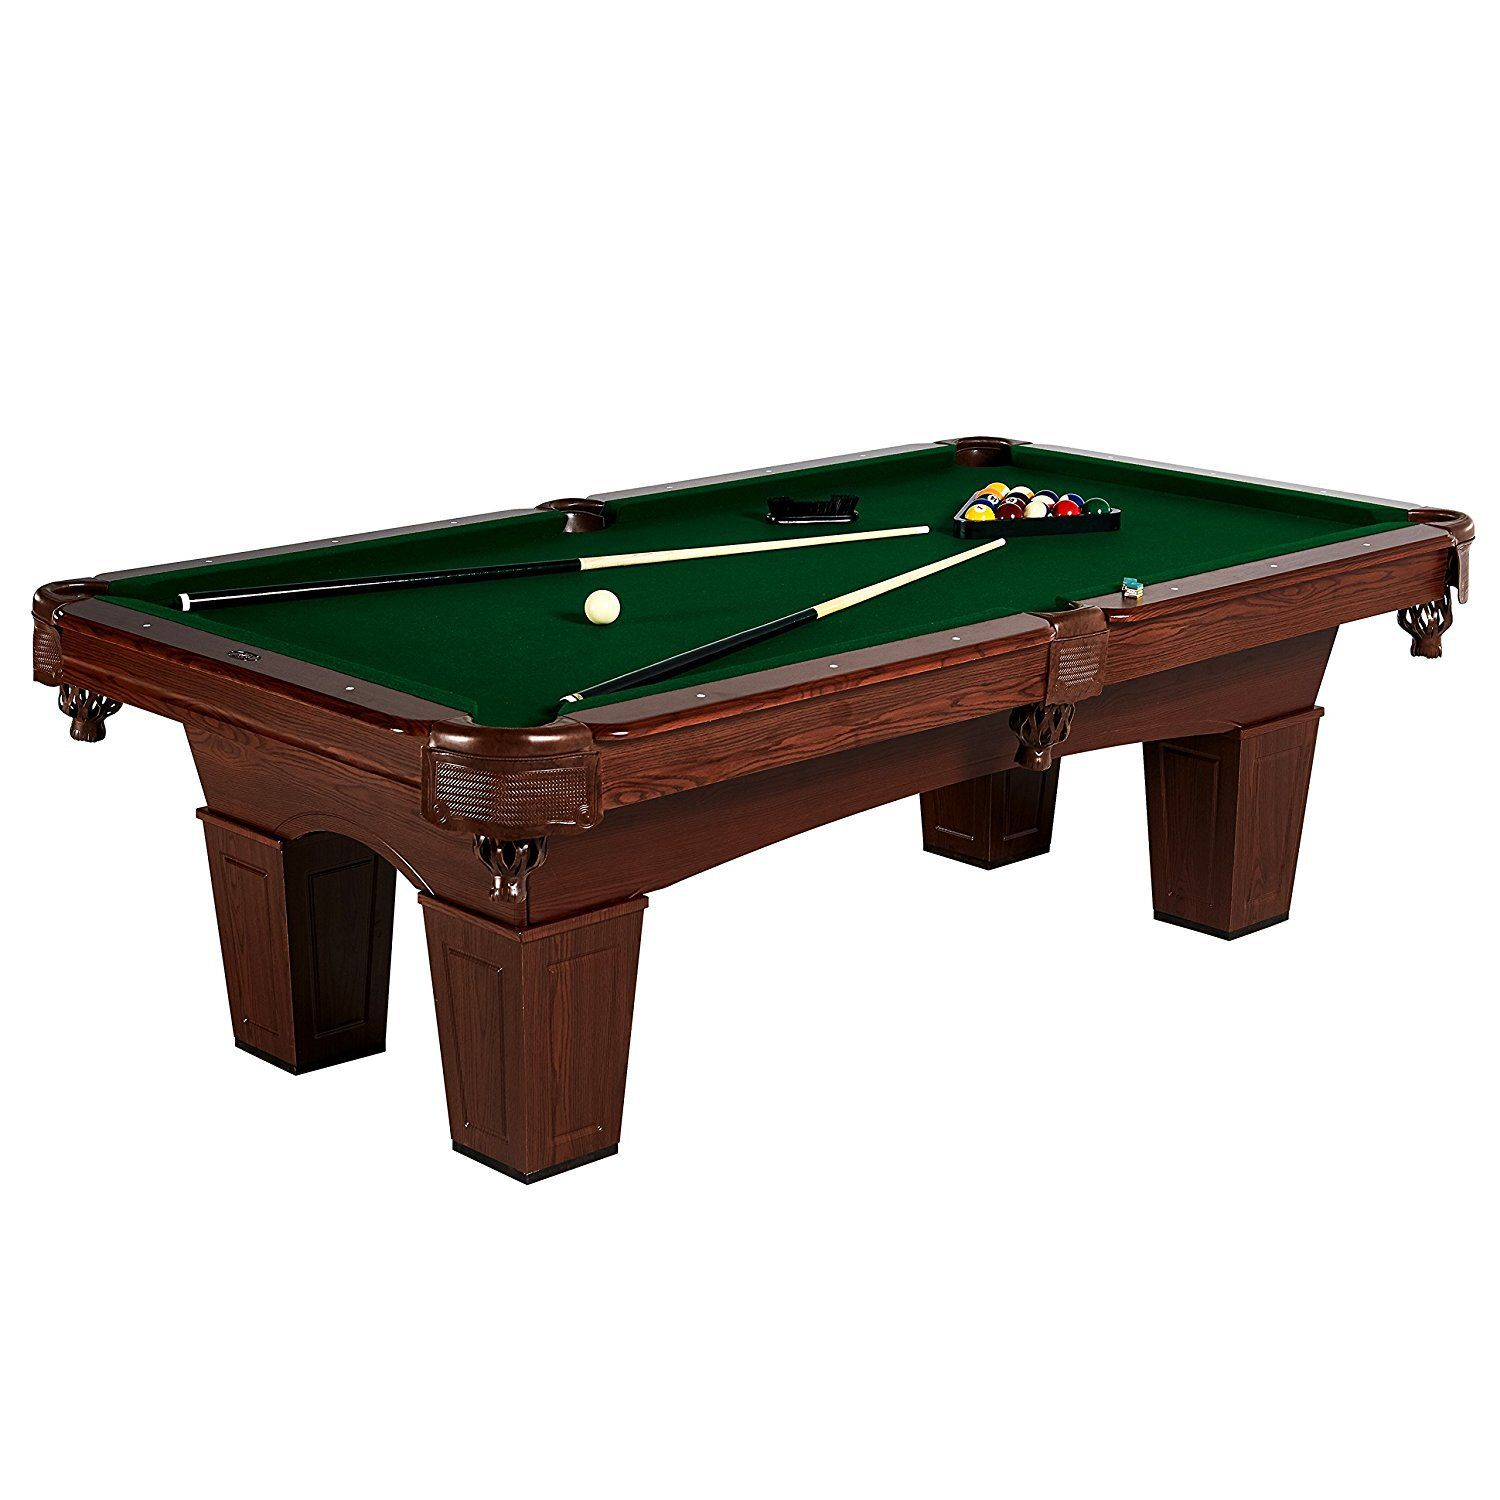 pin by tawhid tasdique on man cave ideas pinterest billiard pool rh pinterest com